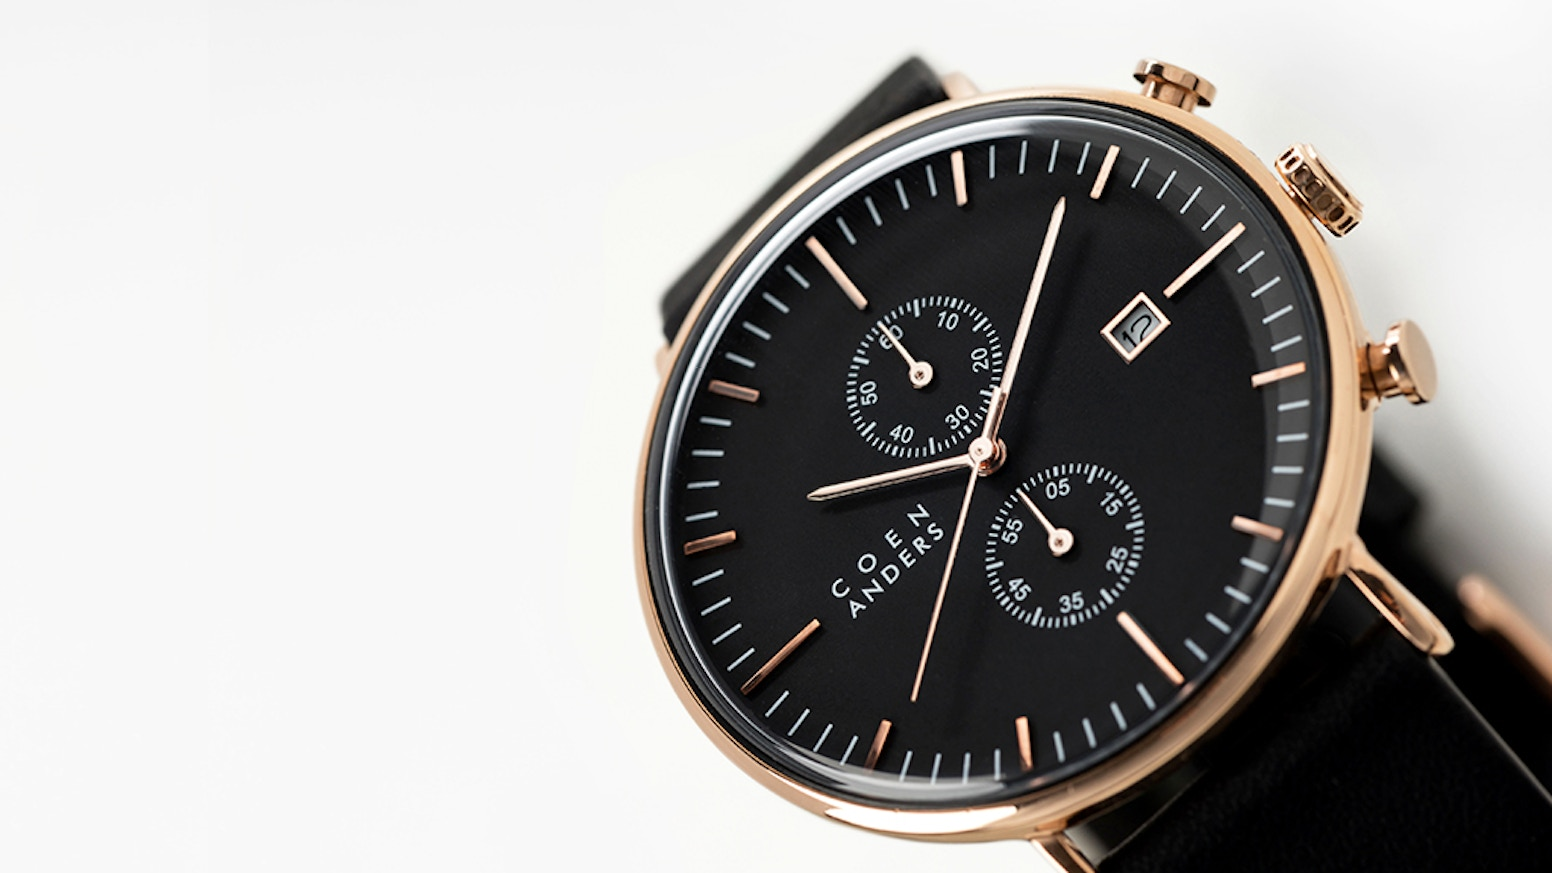 Sleek, versatile watches meticulously designed for the dapper and chic minimalists.